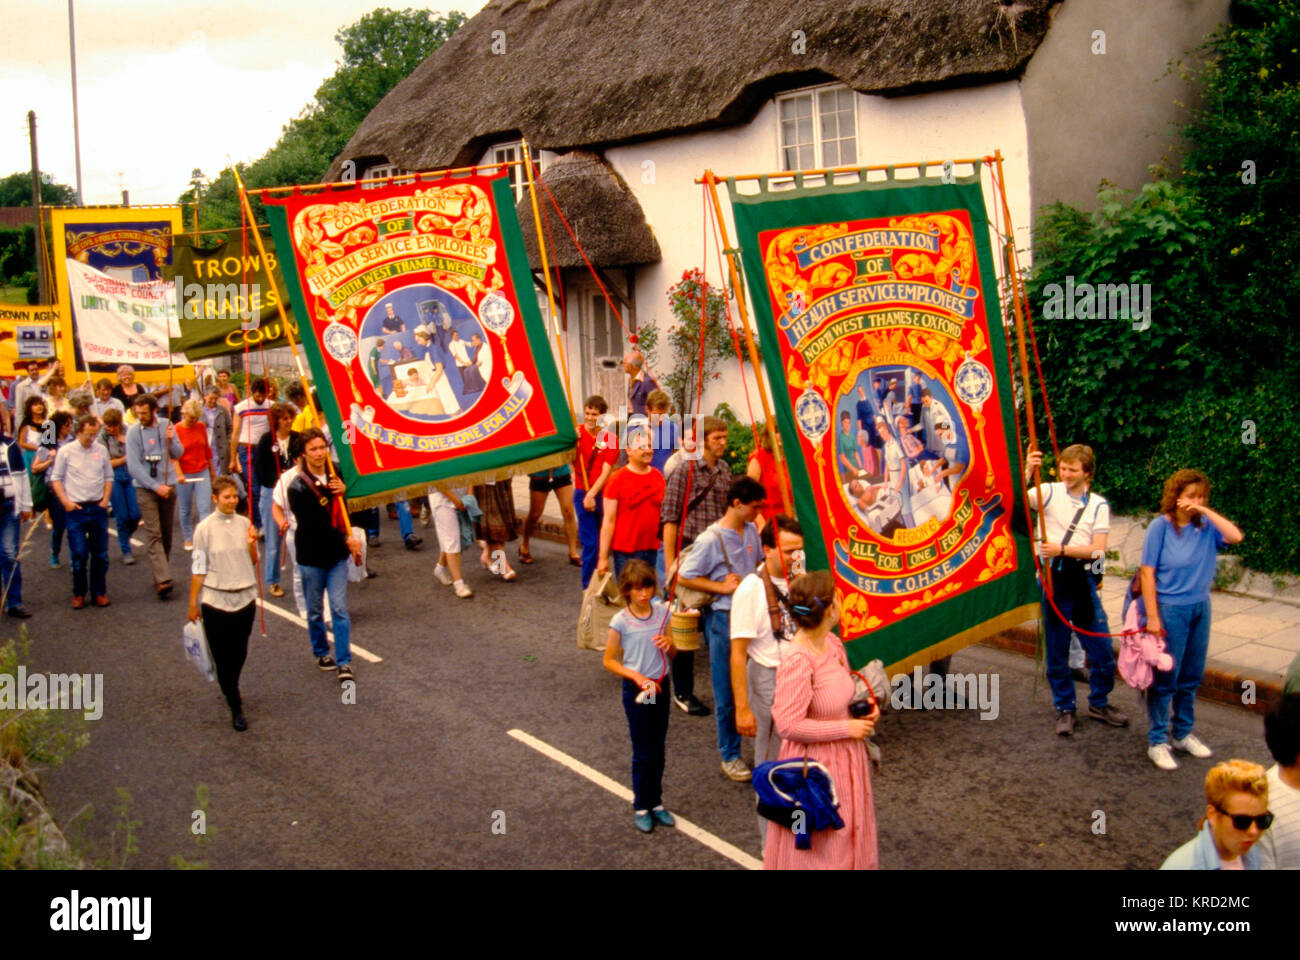 People taking part in the Tolpuddle Rally Festival, Dorset, an annual event commemorating the Tolpuddle Martyrs - Stock Image